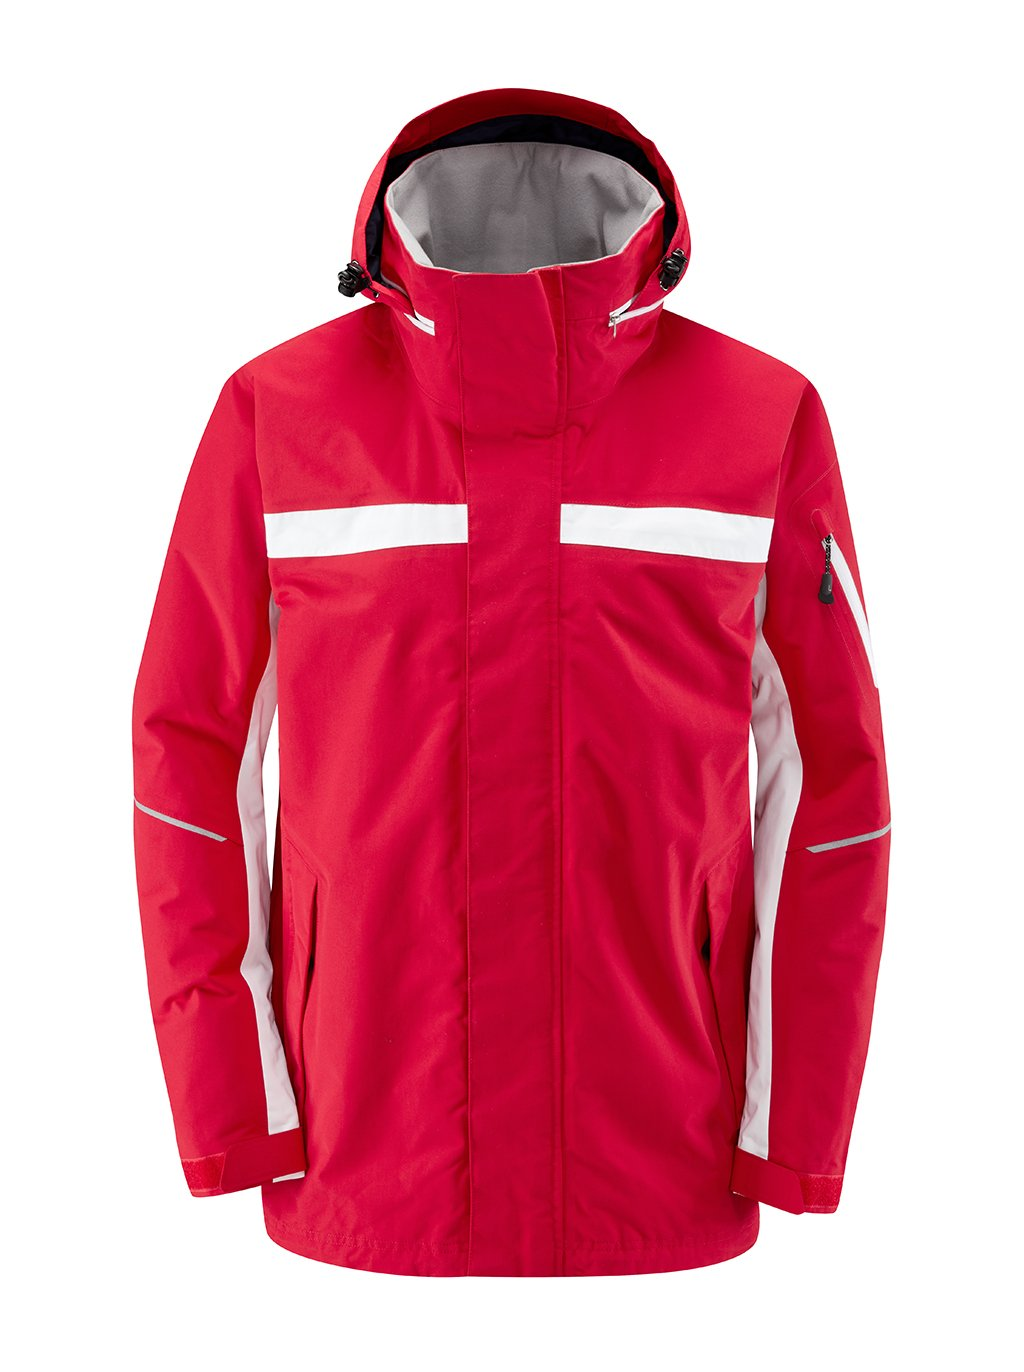 Henri Lloyd Sail Jacket 2.0